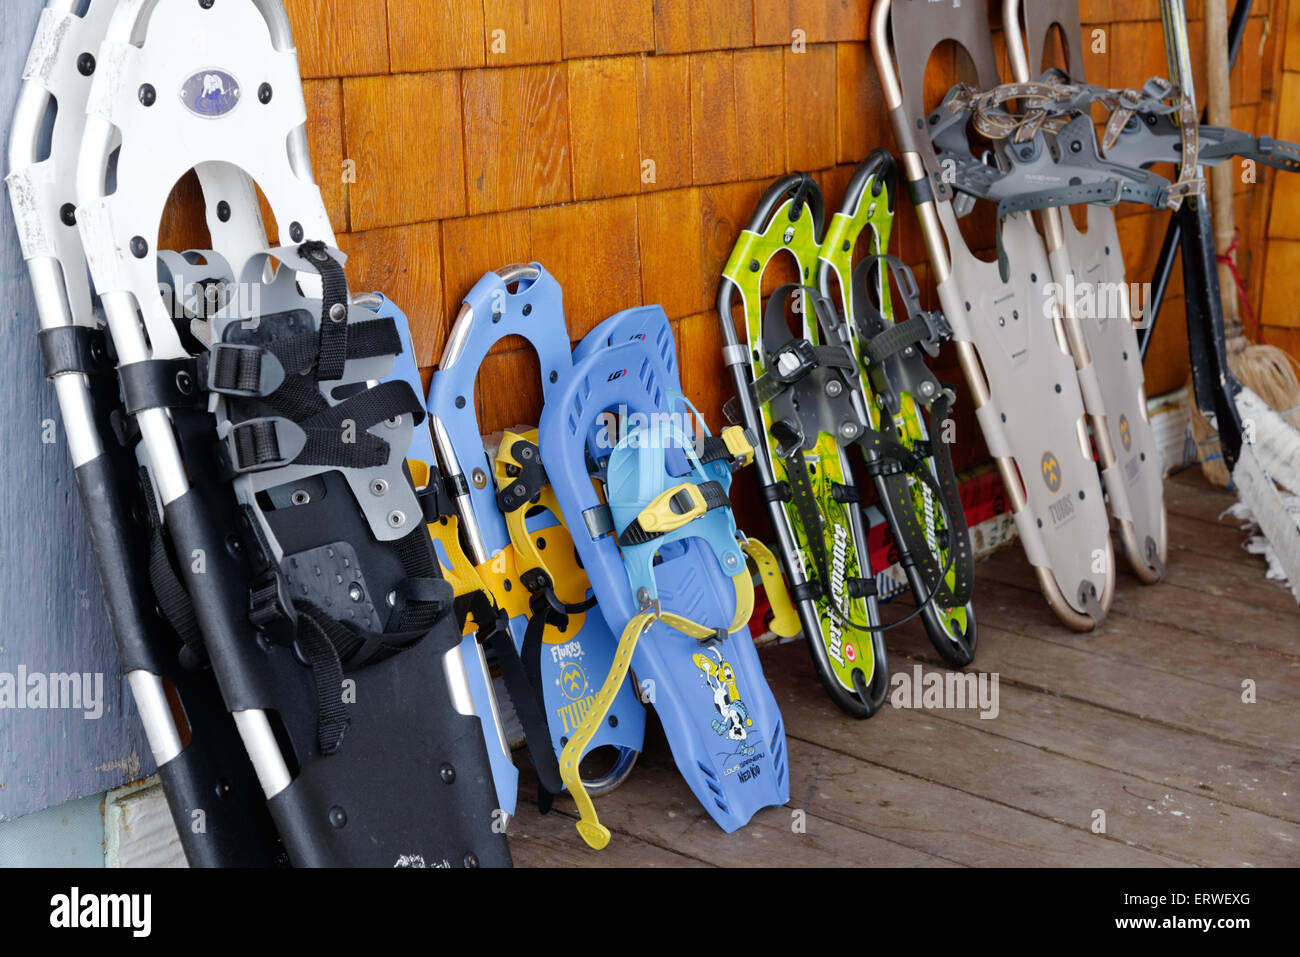 A family's snowshoes on the balcony of a house - two adult and three children's pairs. - Stock Image